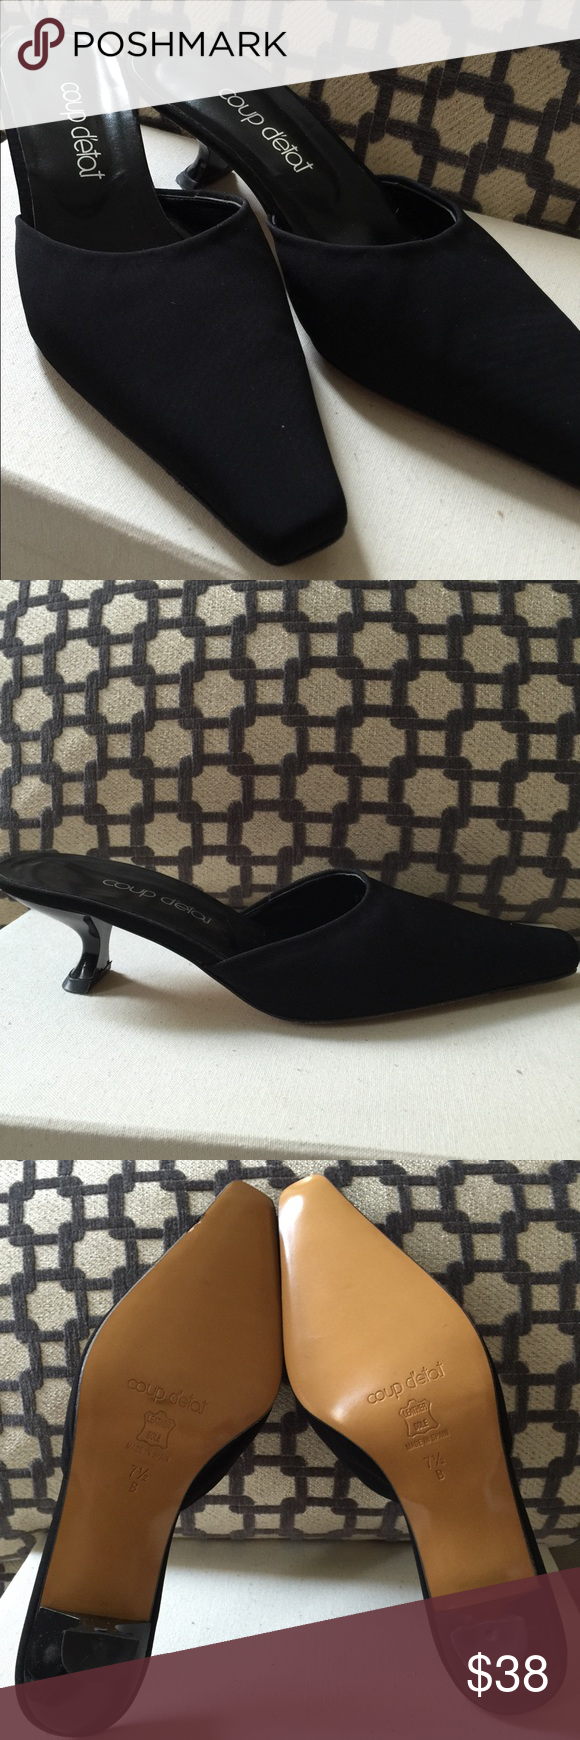 New Coup Détat Black Fabric and Leather Mules. New Coup Détat Black Classic and Elegant Fabric Mules.  Leather soles, made in Spain.  Size 7 1/2B.  New never worn, perfect condition . Coup Dé Tat Shoes Mules & Clogs